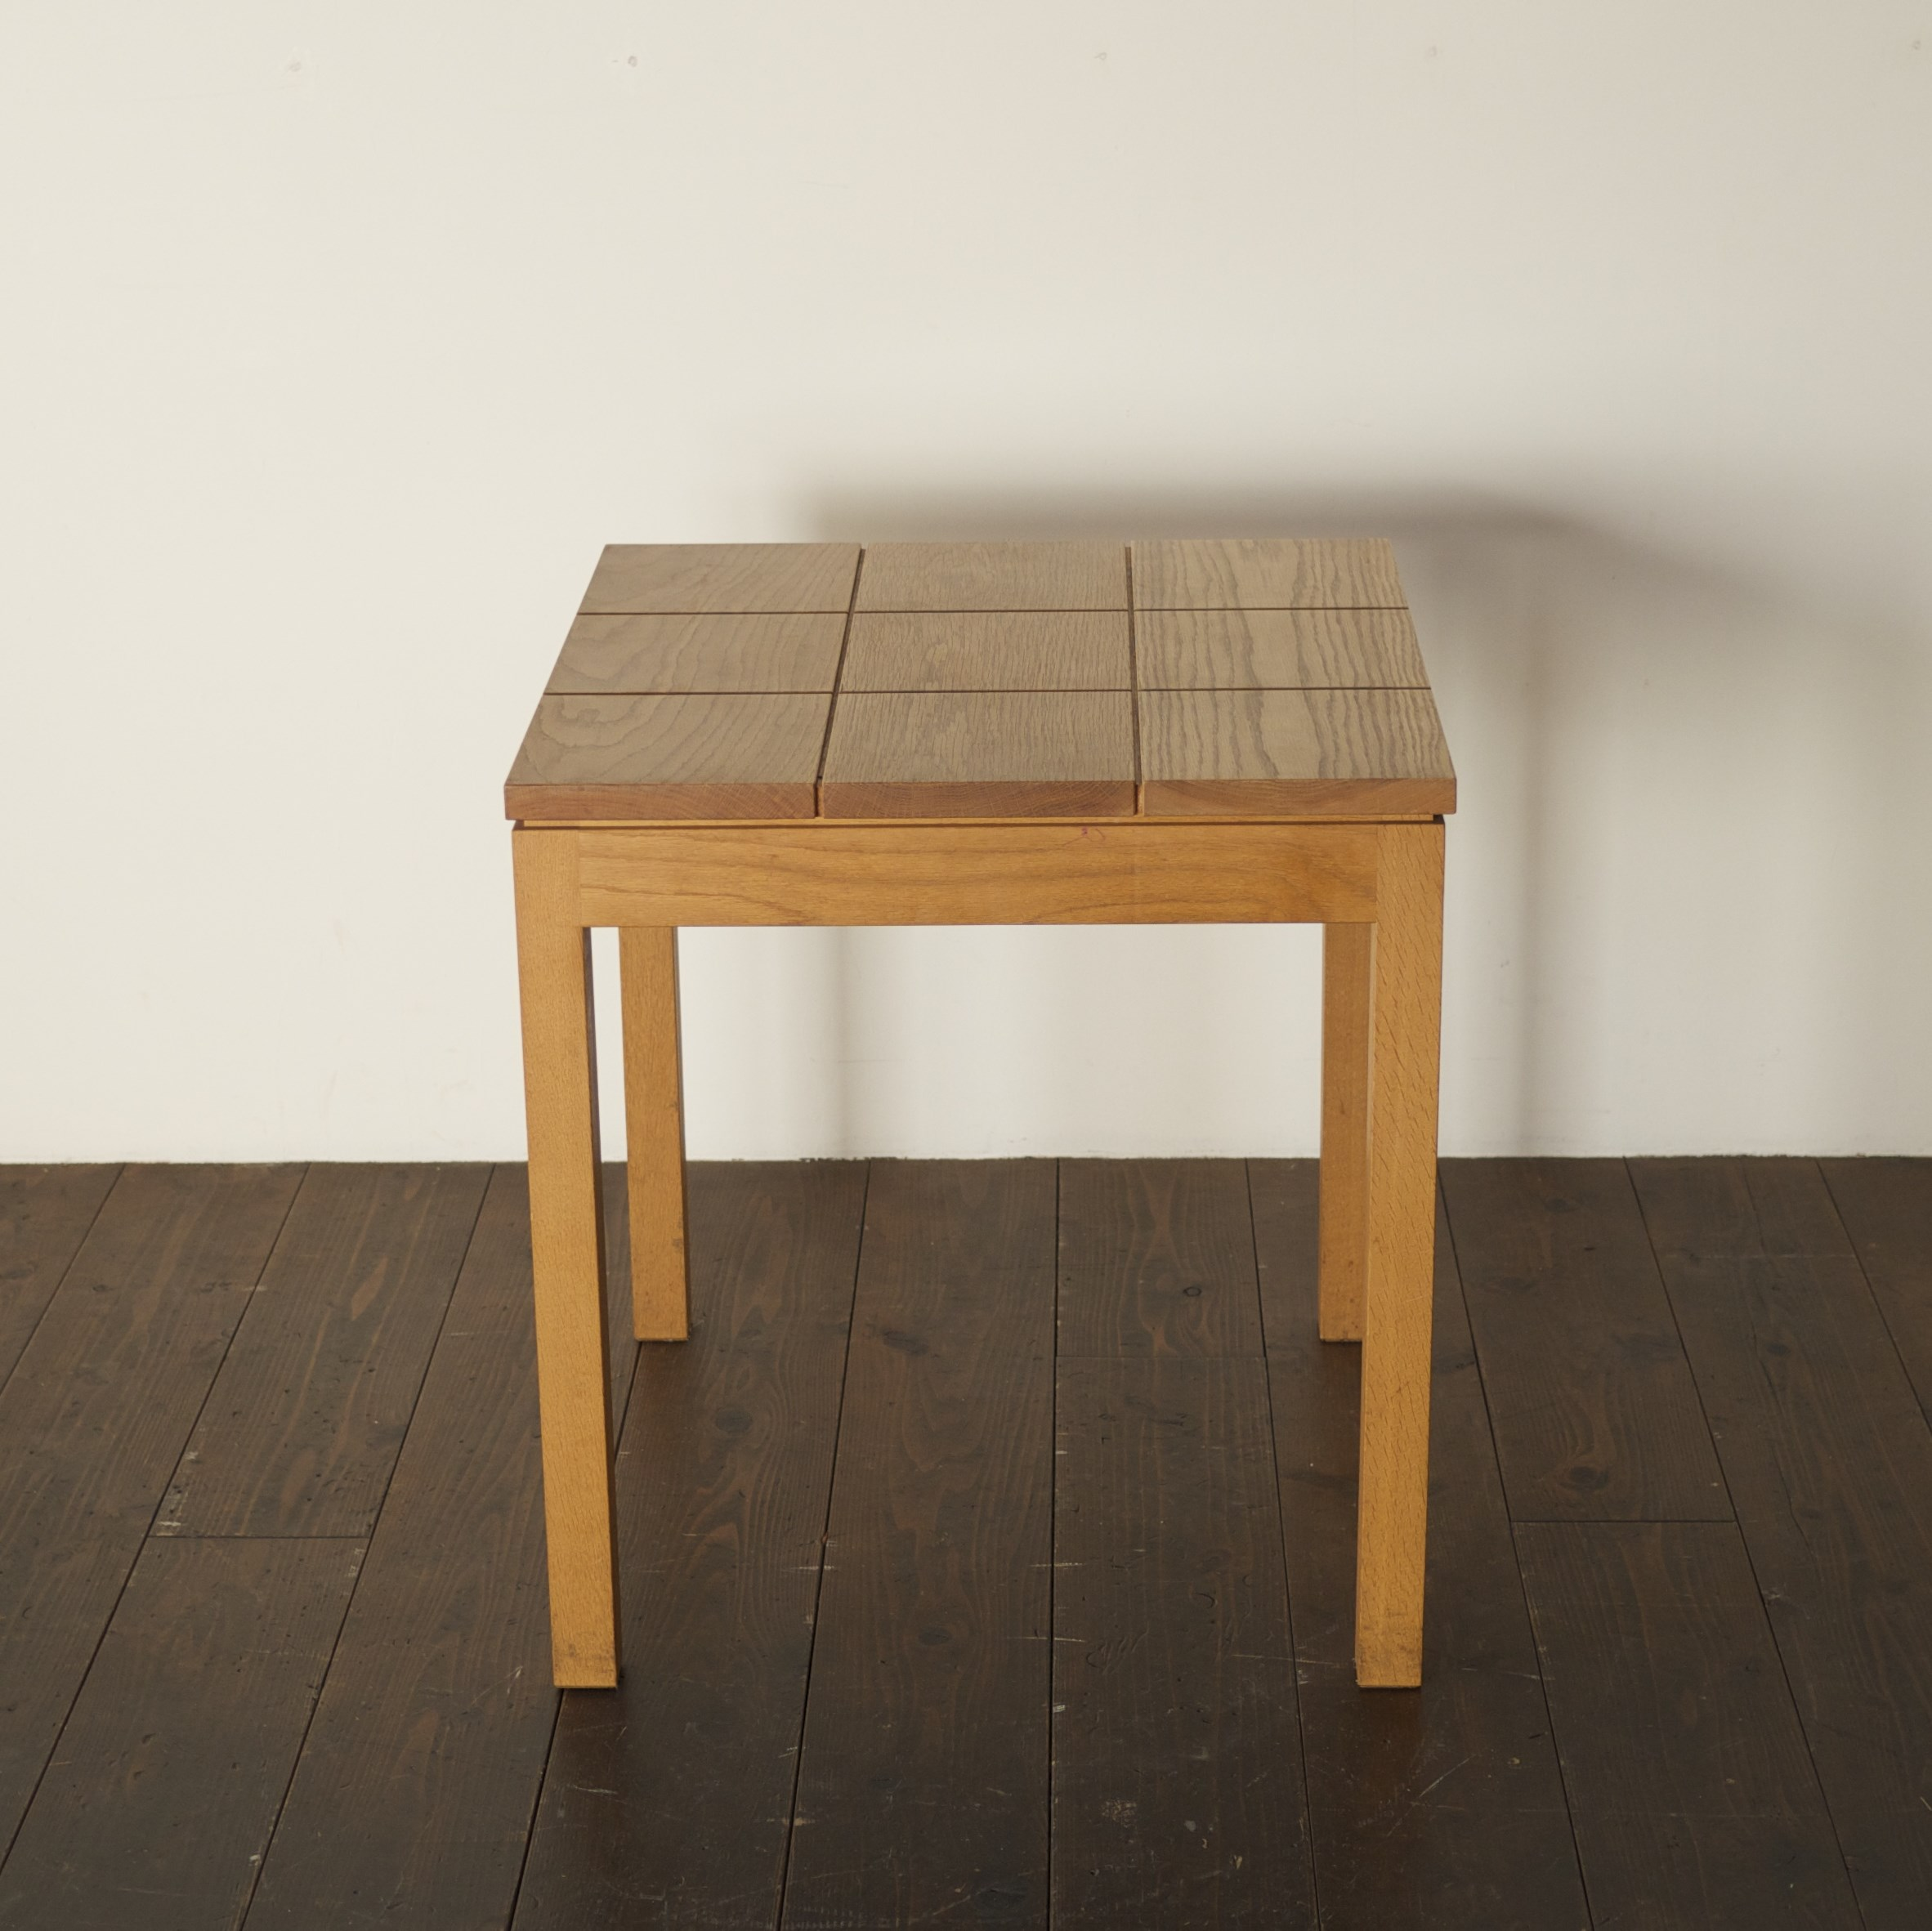 GRID TABLE / wedge